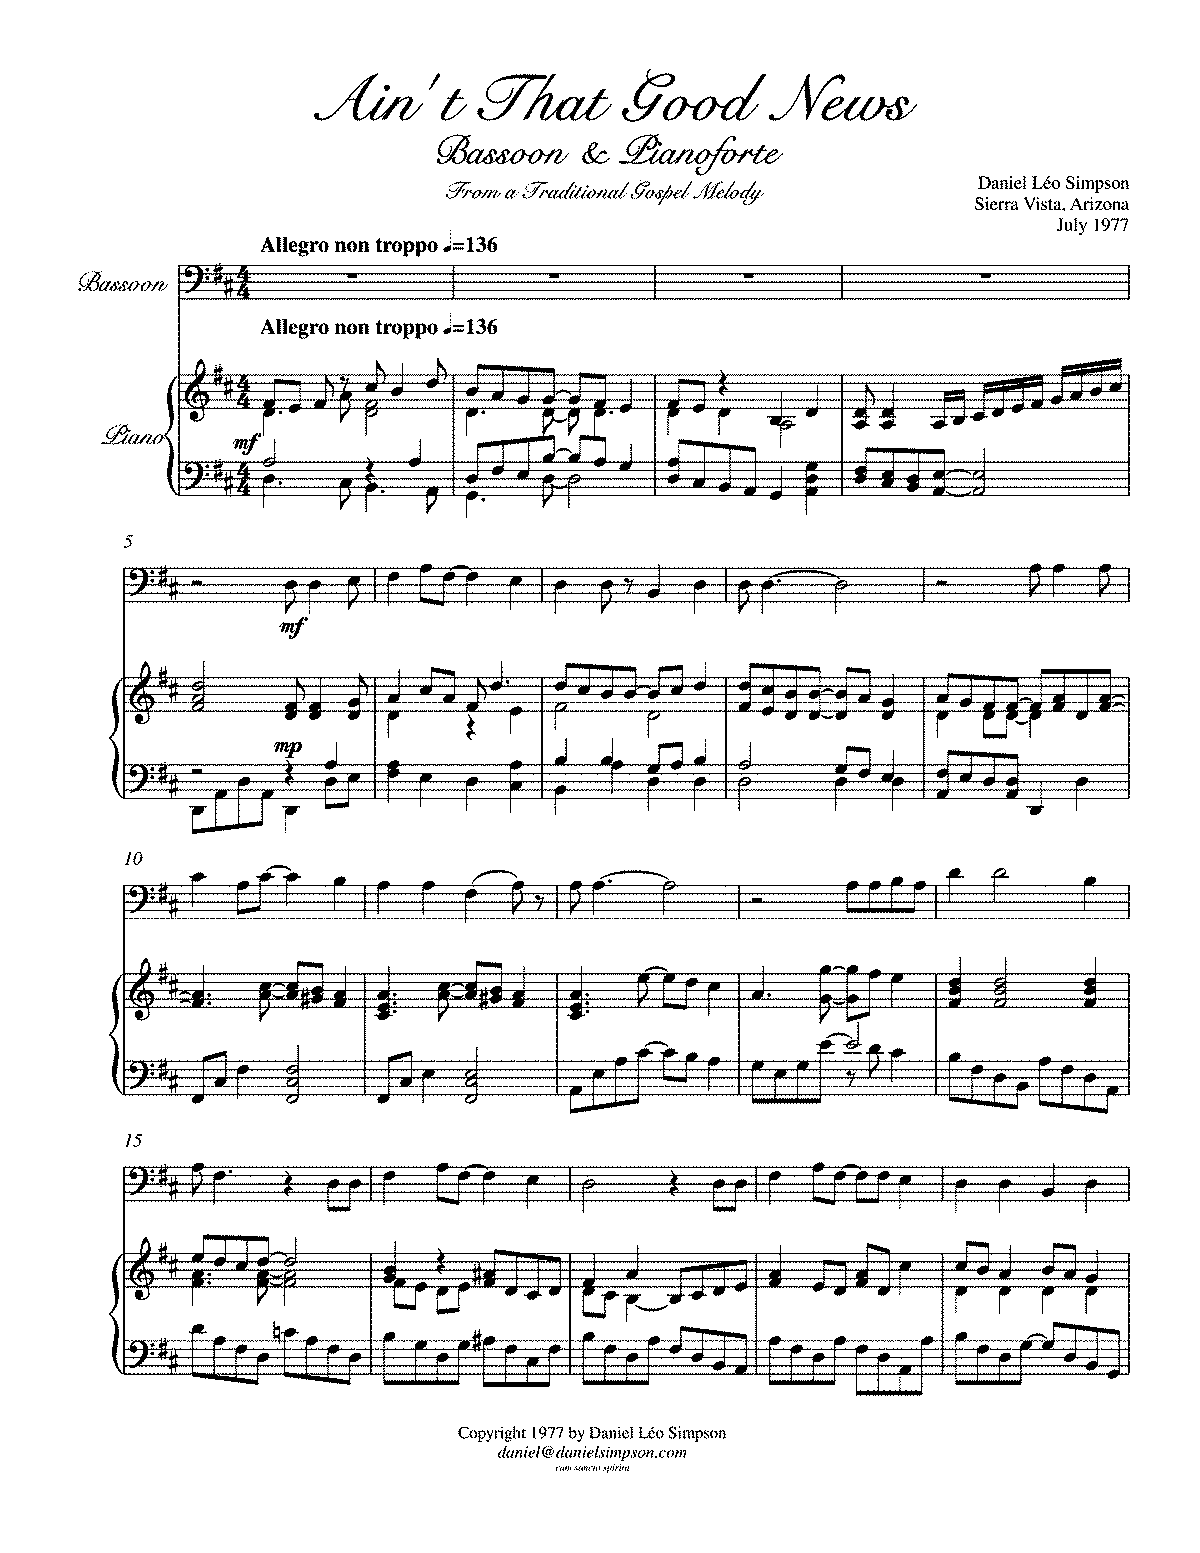 PMLP420282-Score-aint-that-good-news-bassoon-piano-simpson-imslp-111812.pdf